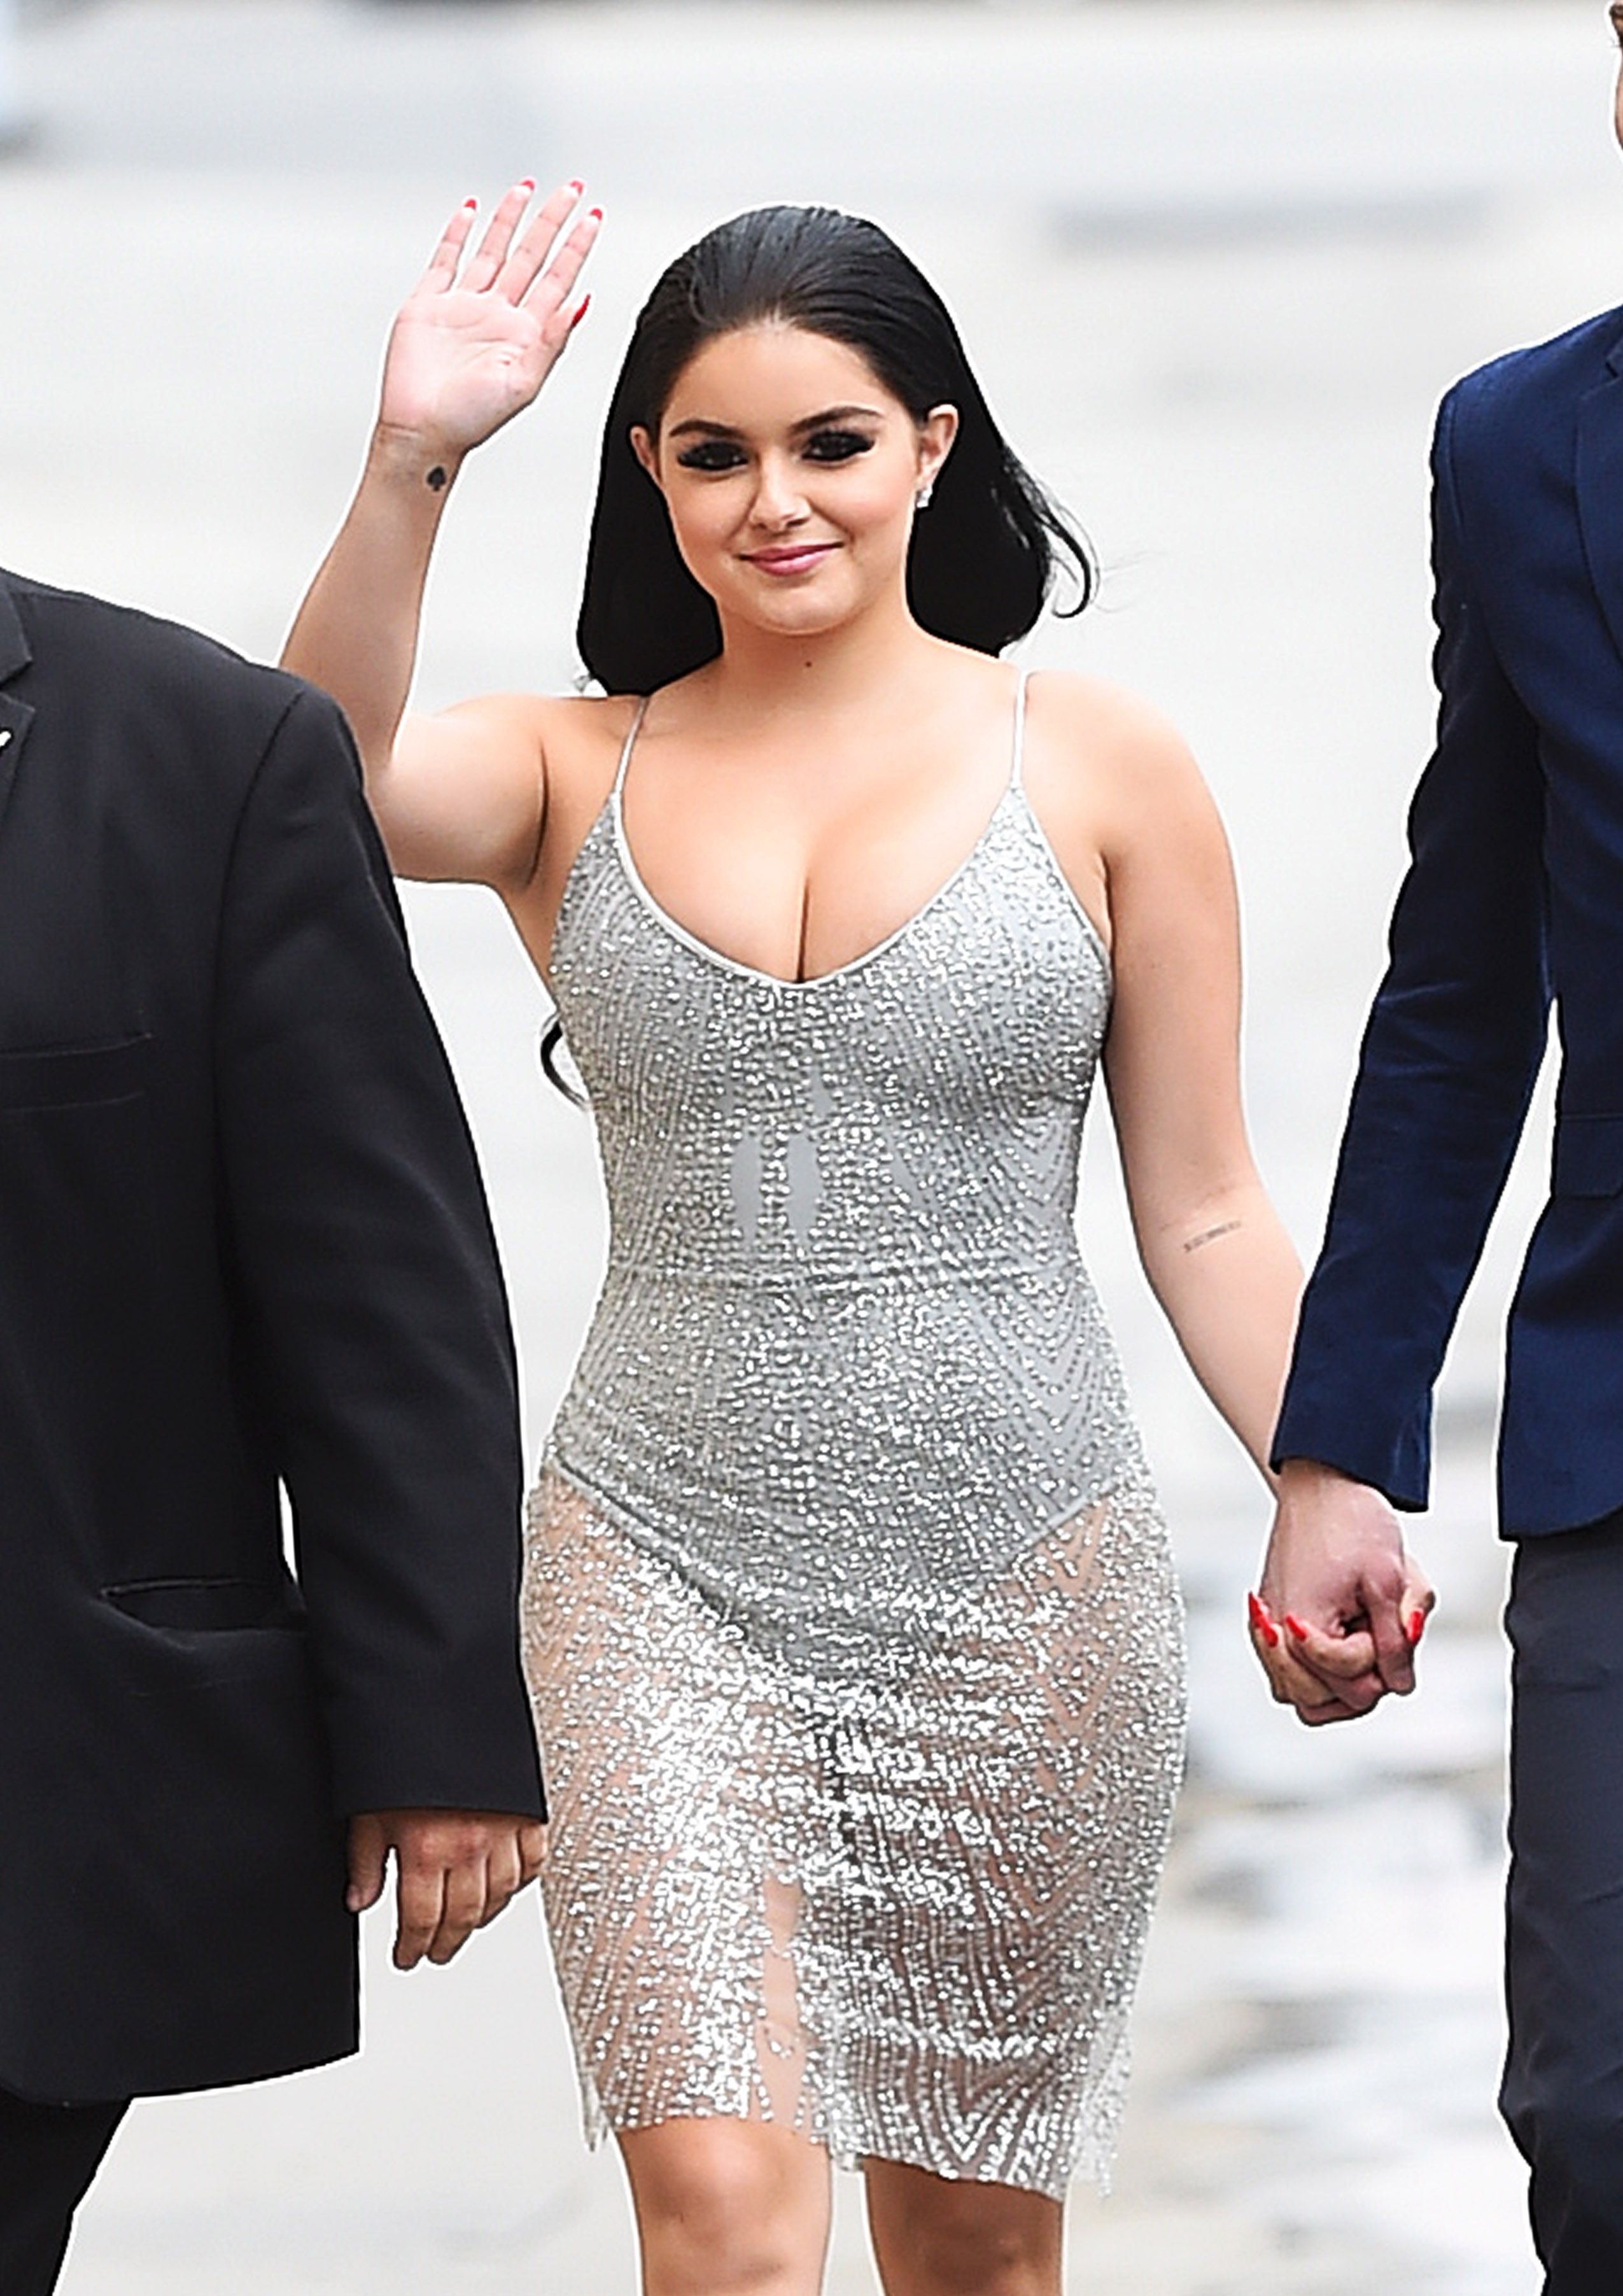 pictures Ariel winter arriving to appear on jimmy kimmel show in los angeles